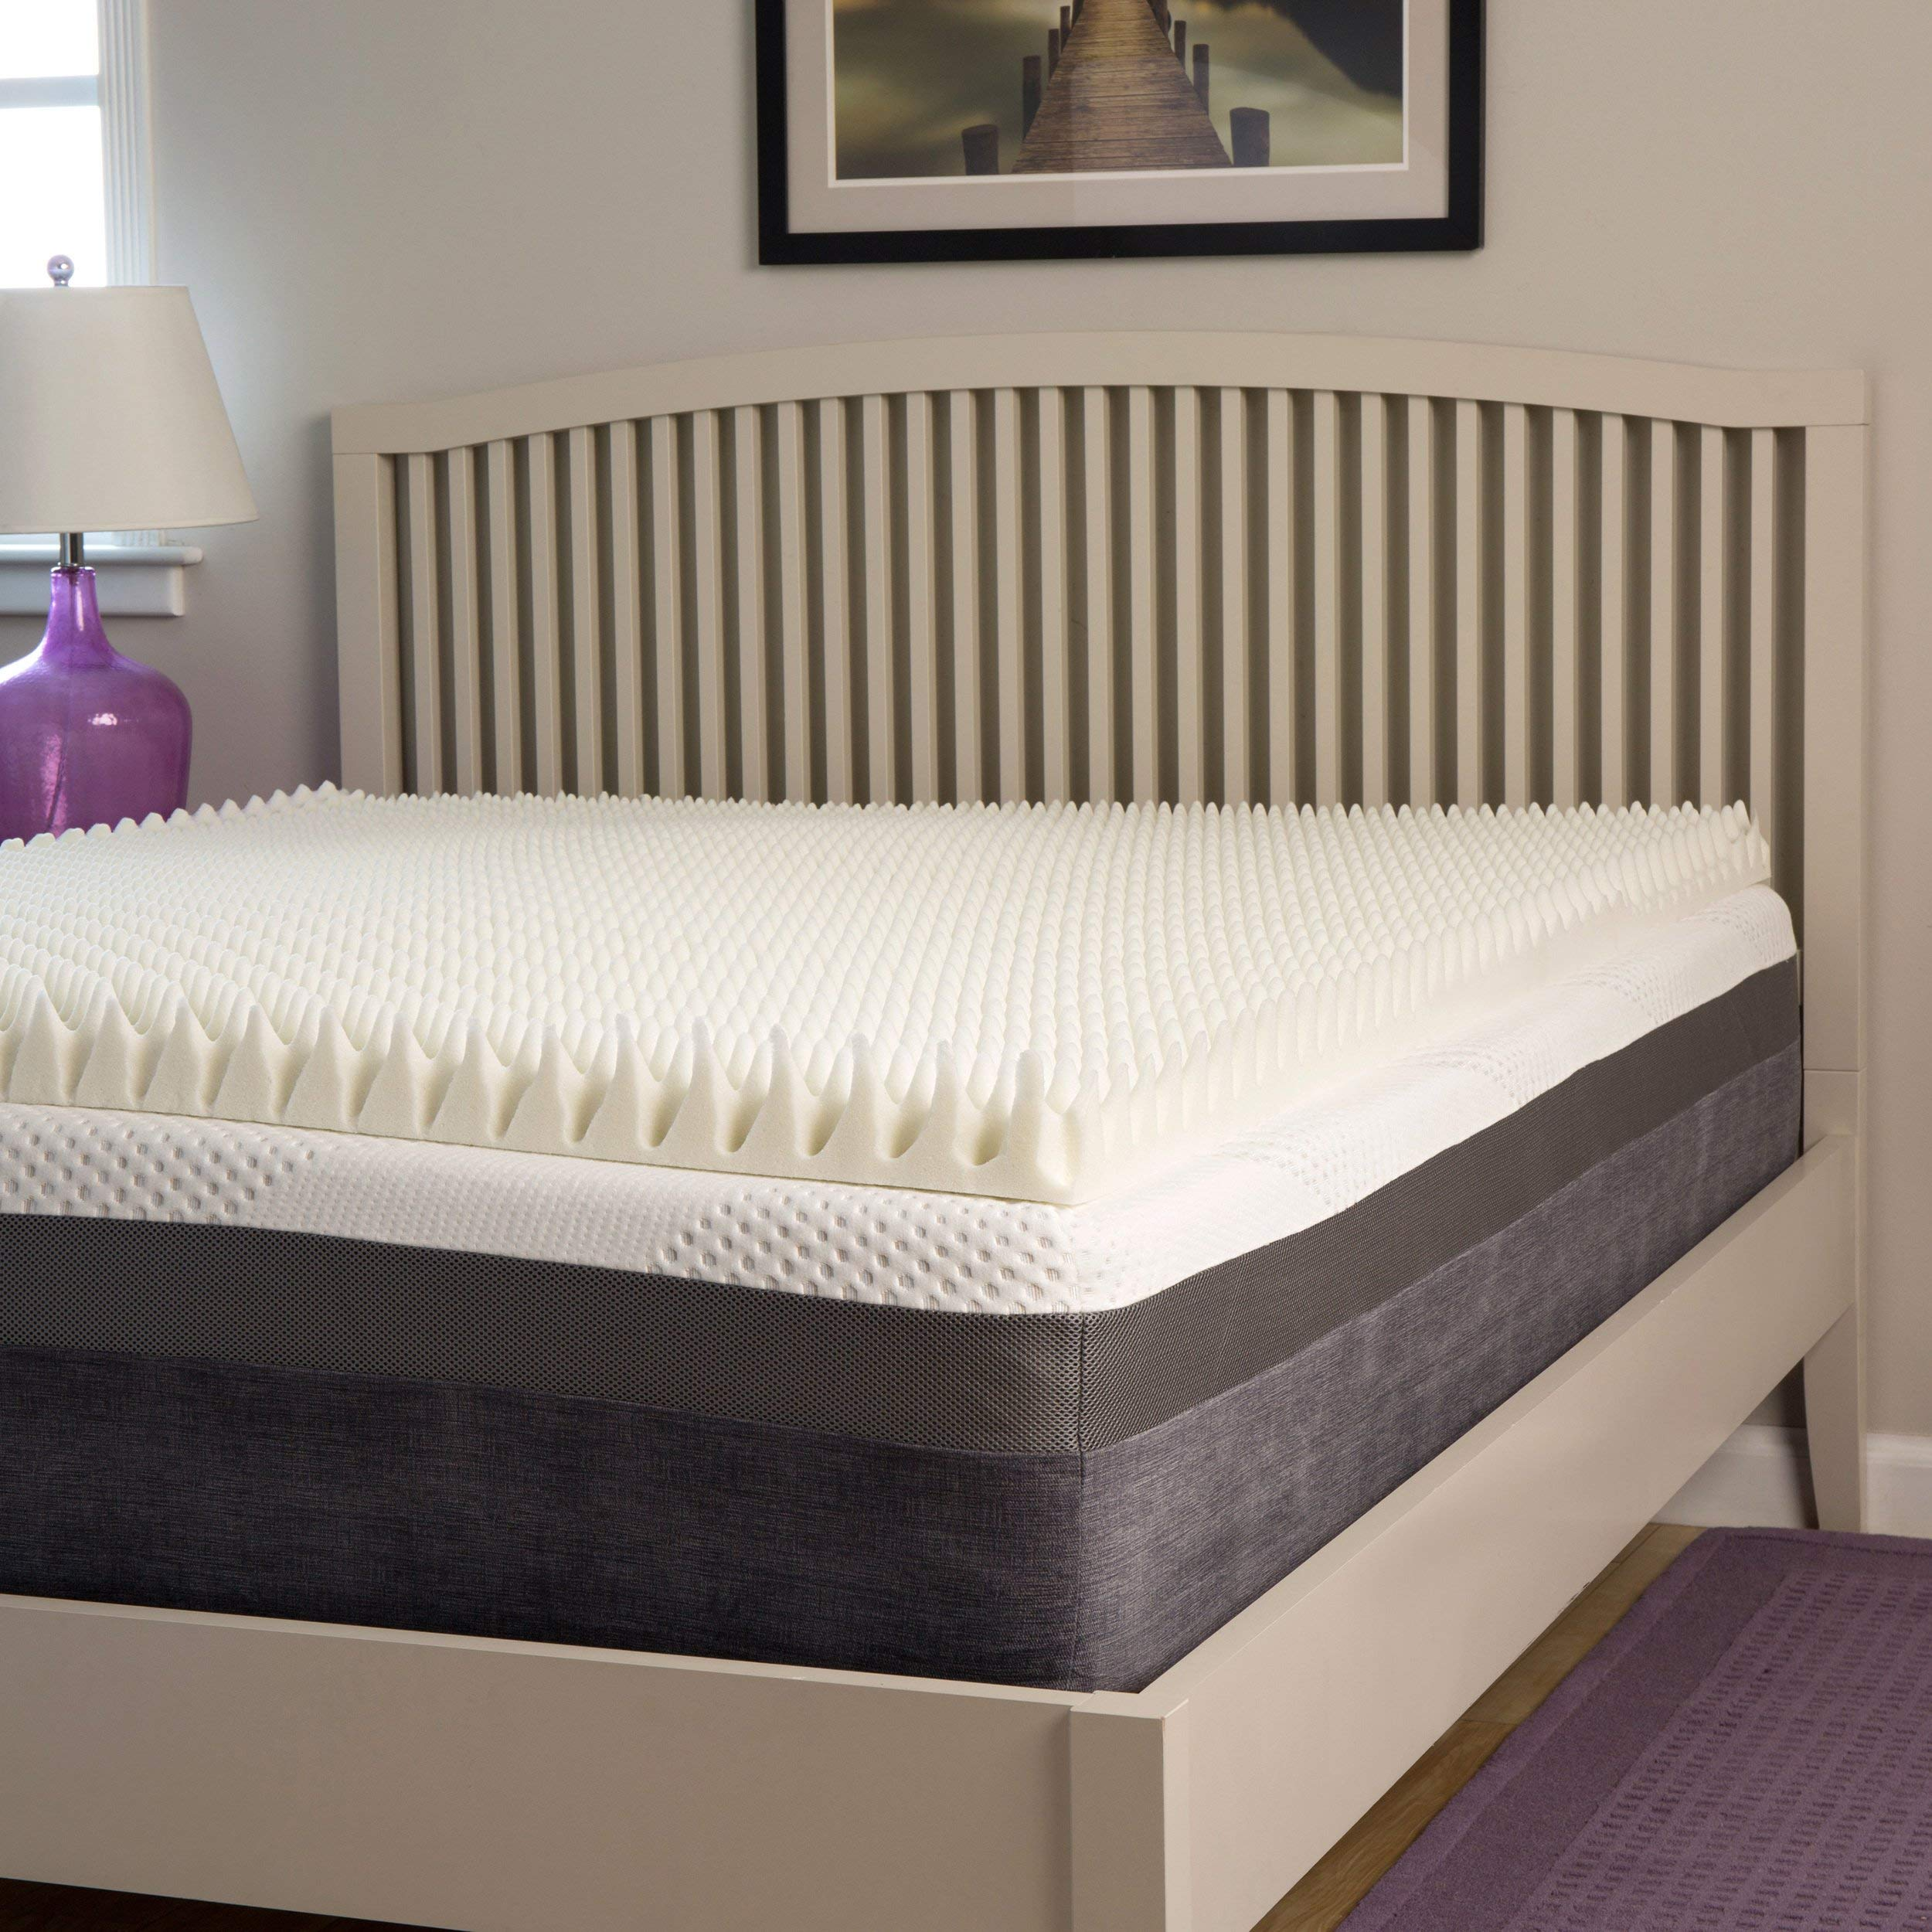 Slumber Perfect Highloft Supreme 3-inch Convoluted Memory Foam Topper Queen